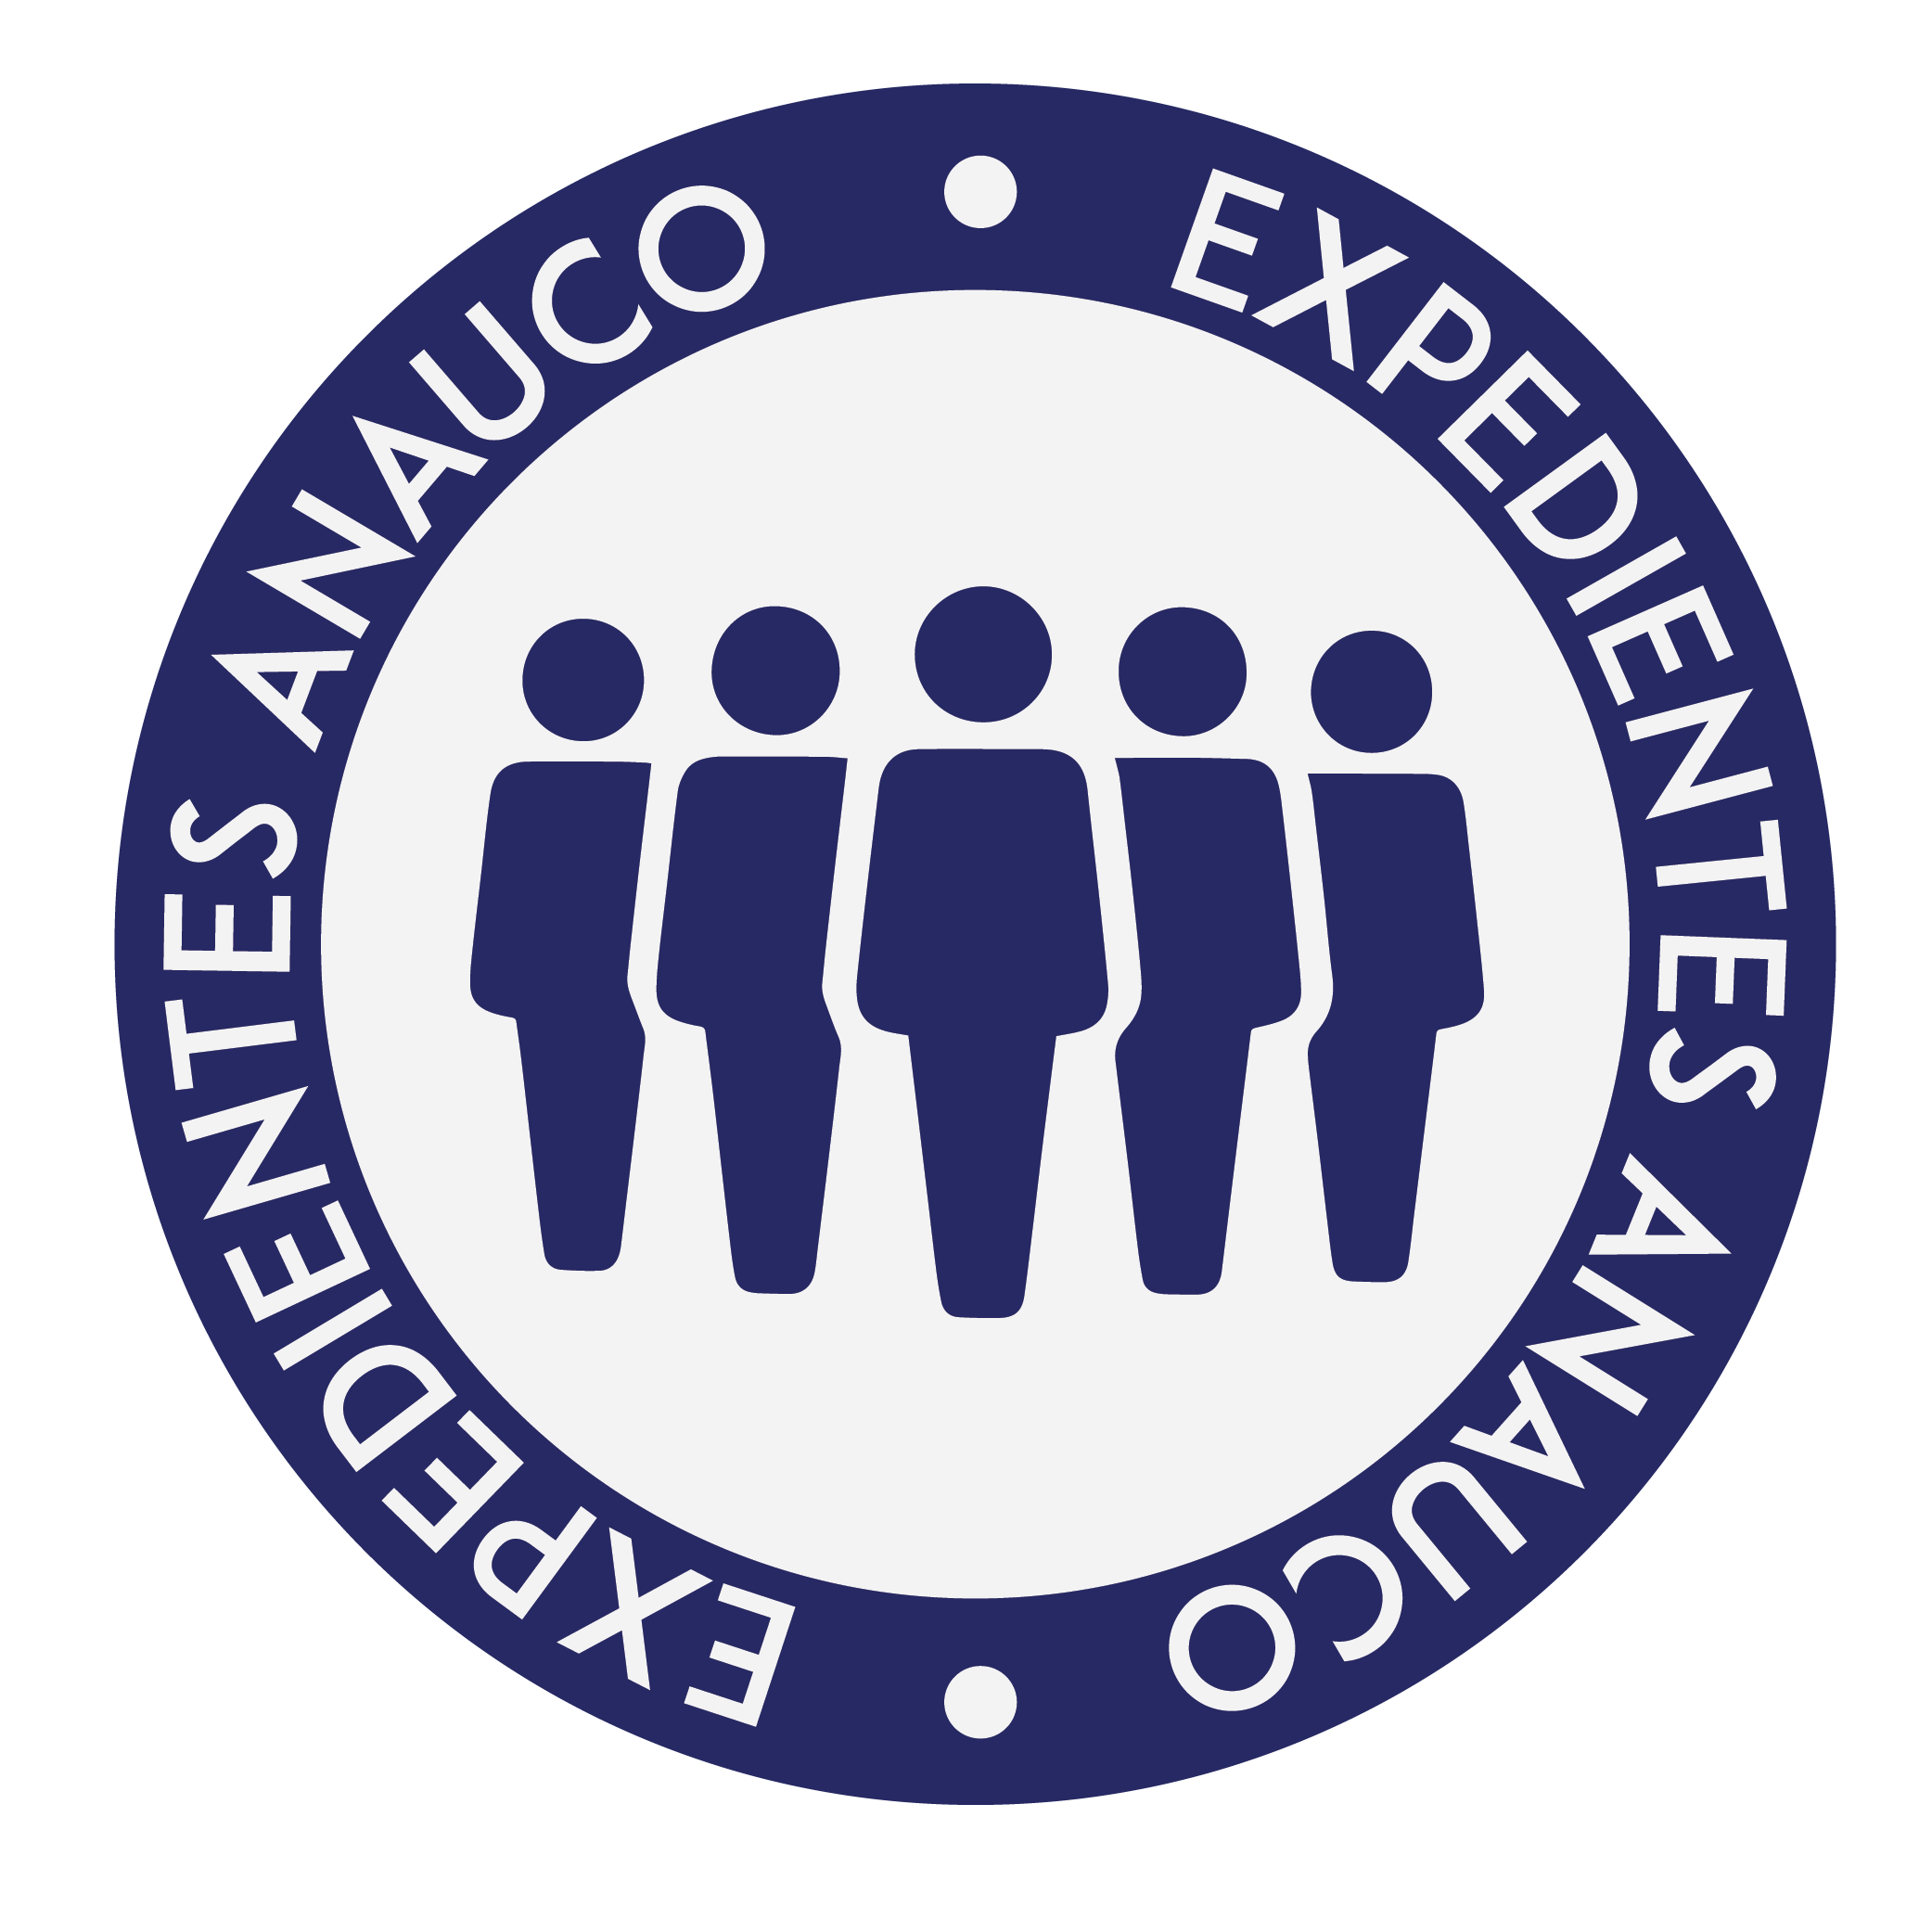 expedientes-anauco-logo